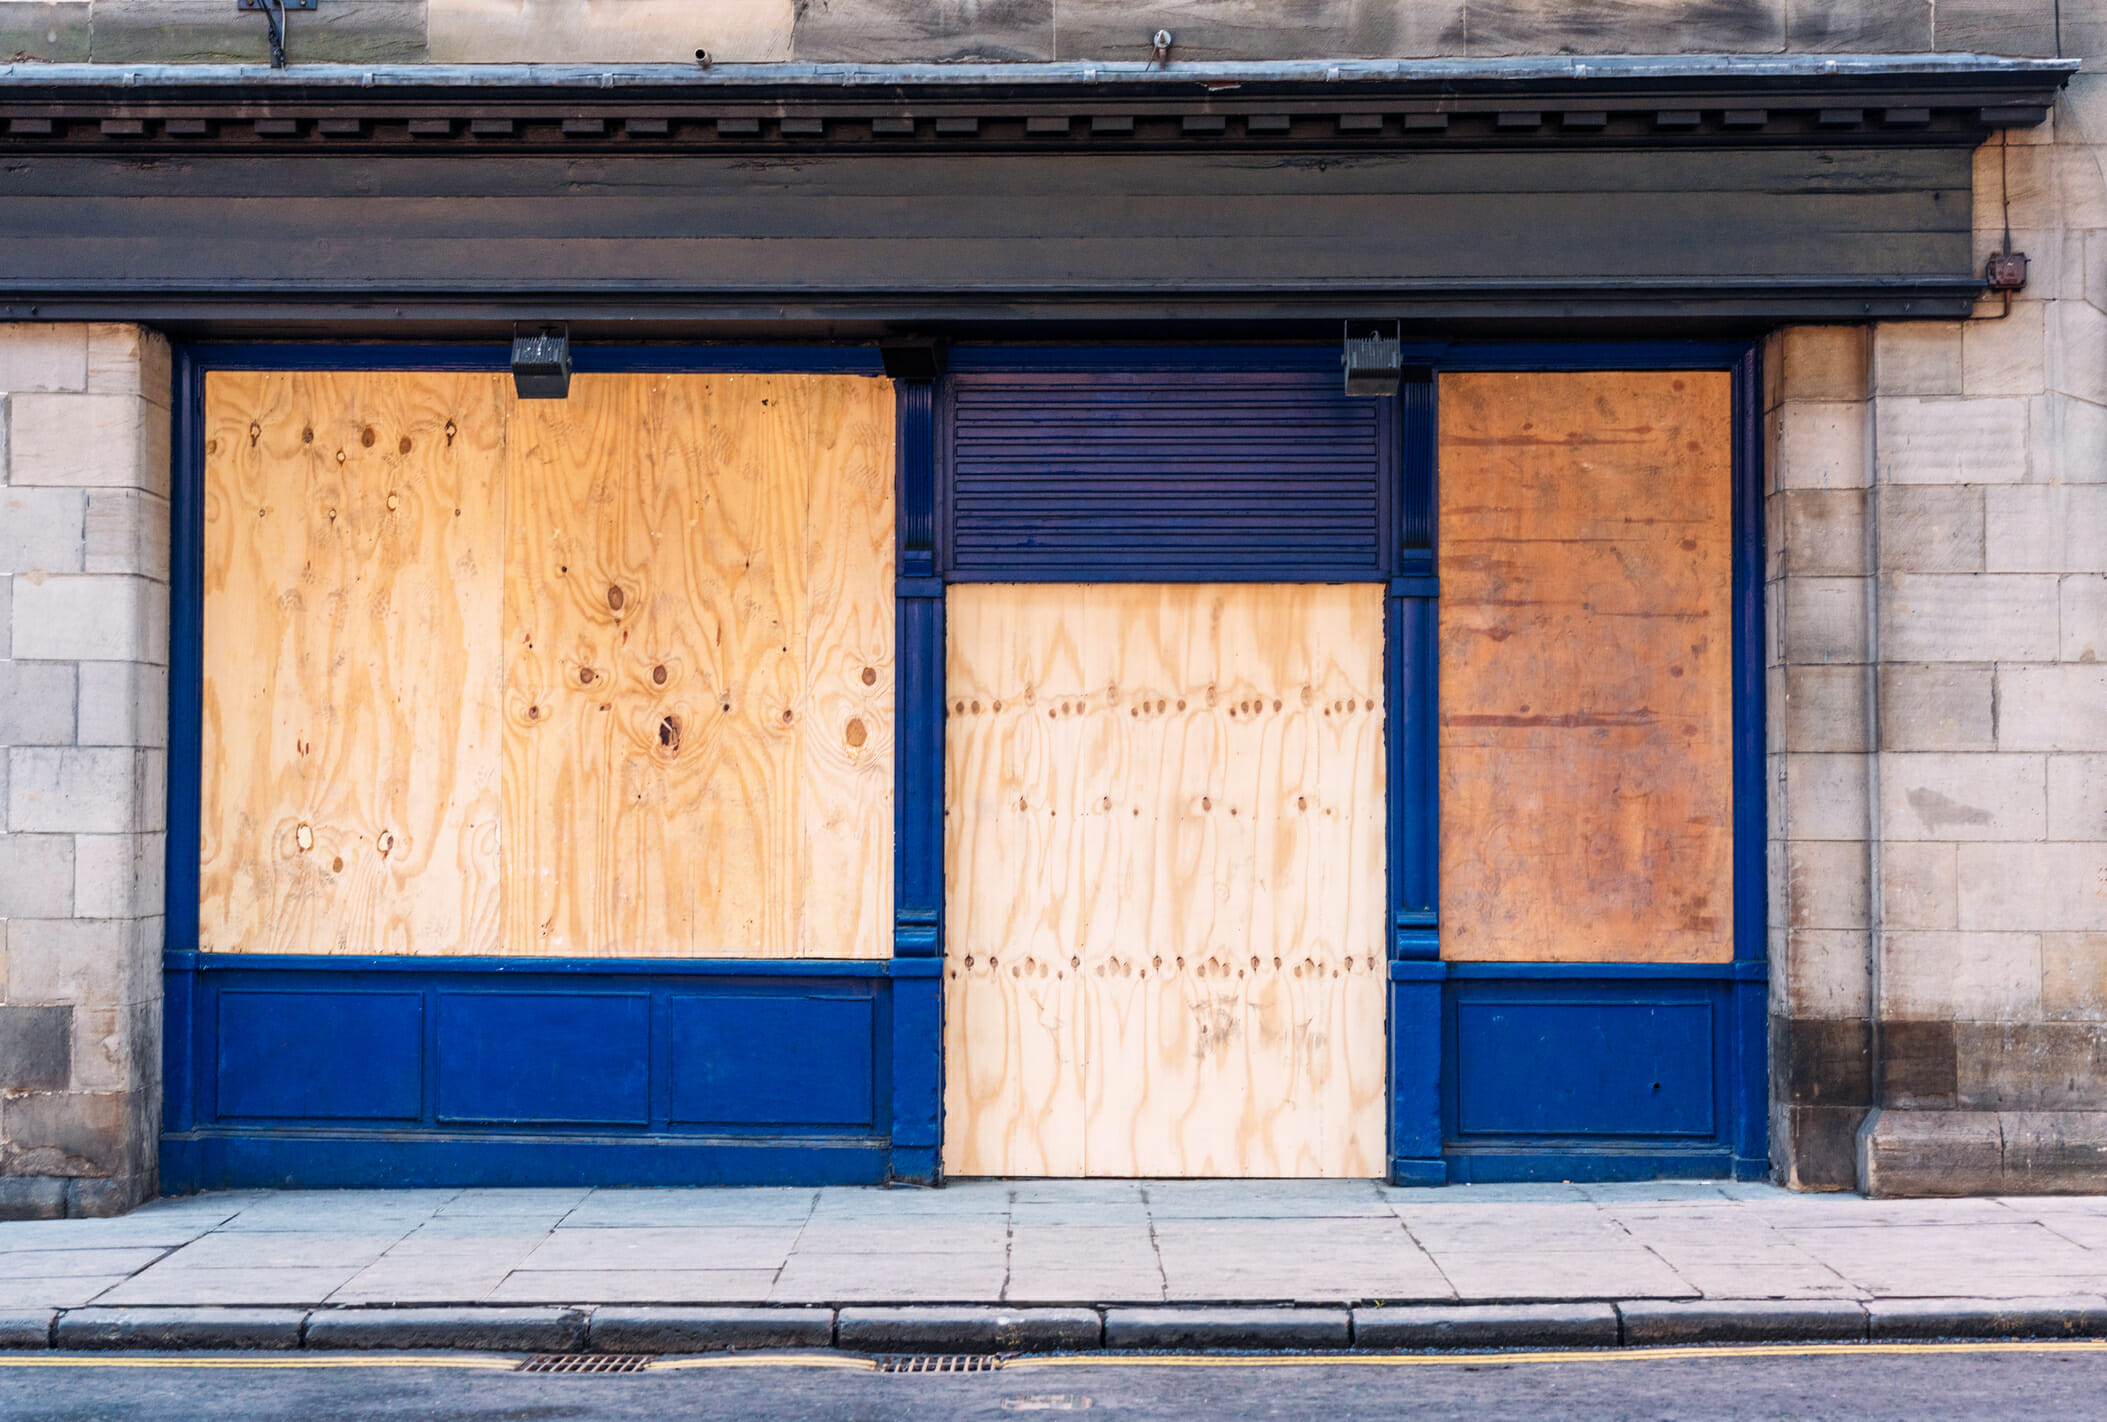 A traditional shopfront, closed and boarded up with wooden boards.